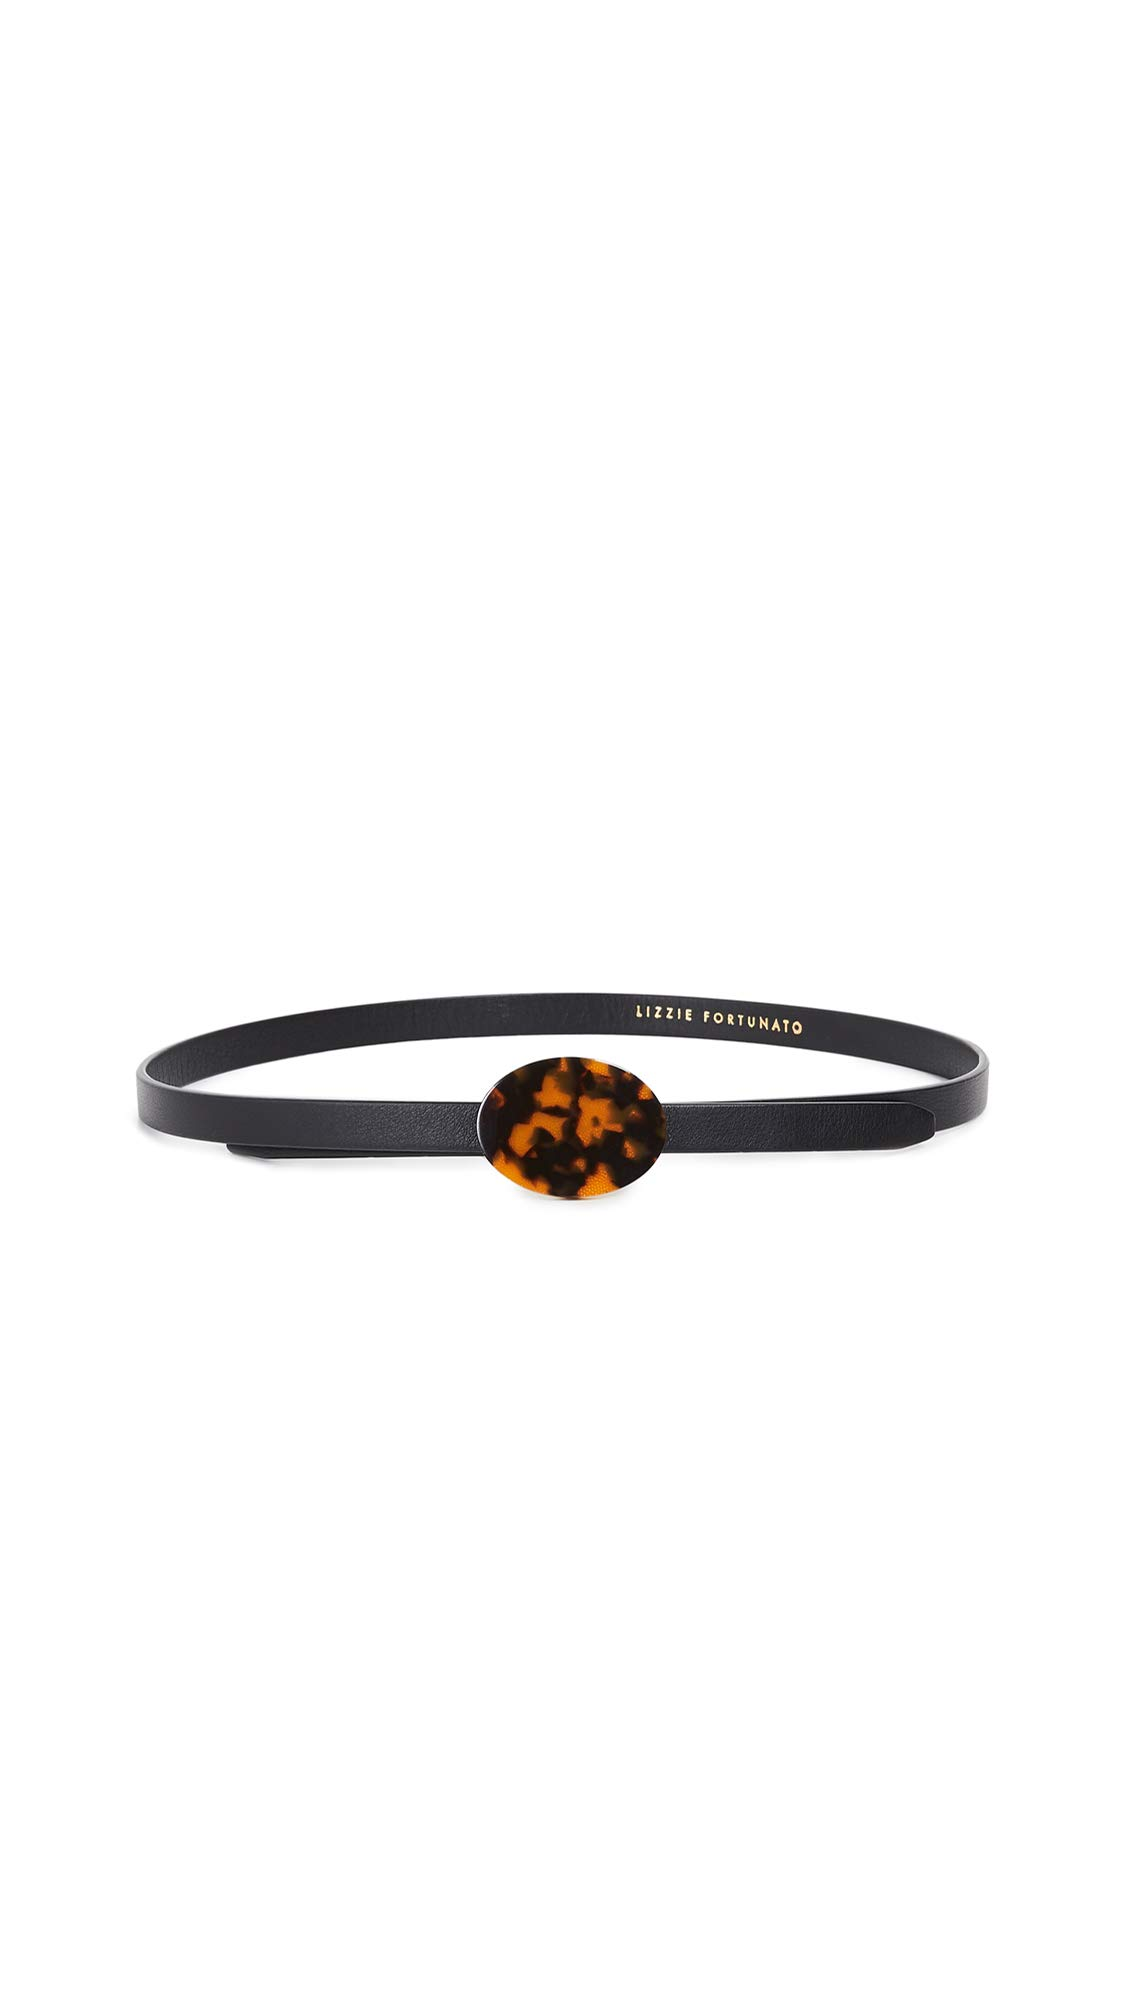 Lizzie Fortunato Women's Orbit Belt, Black/Tortoise, One Size